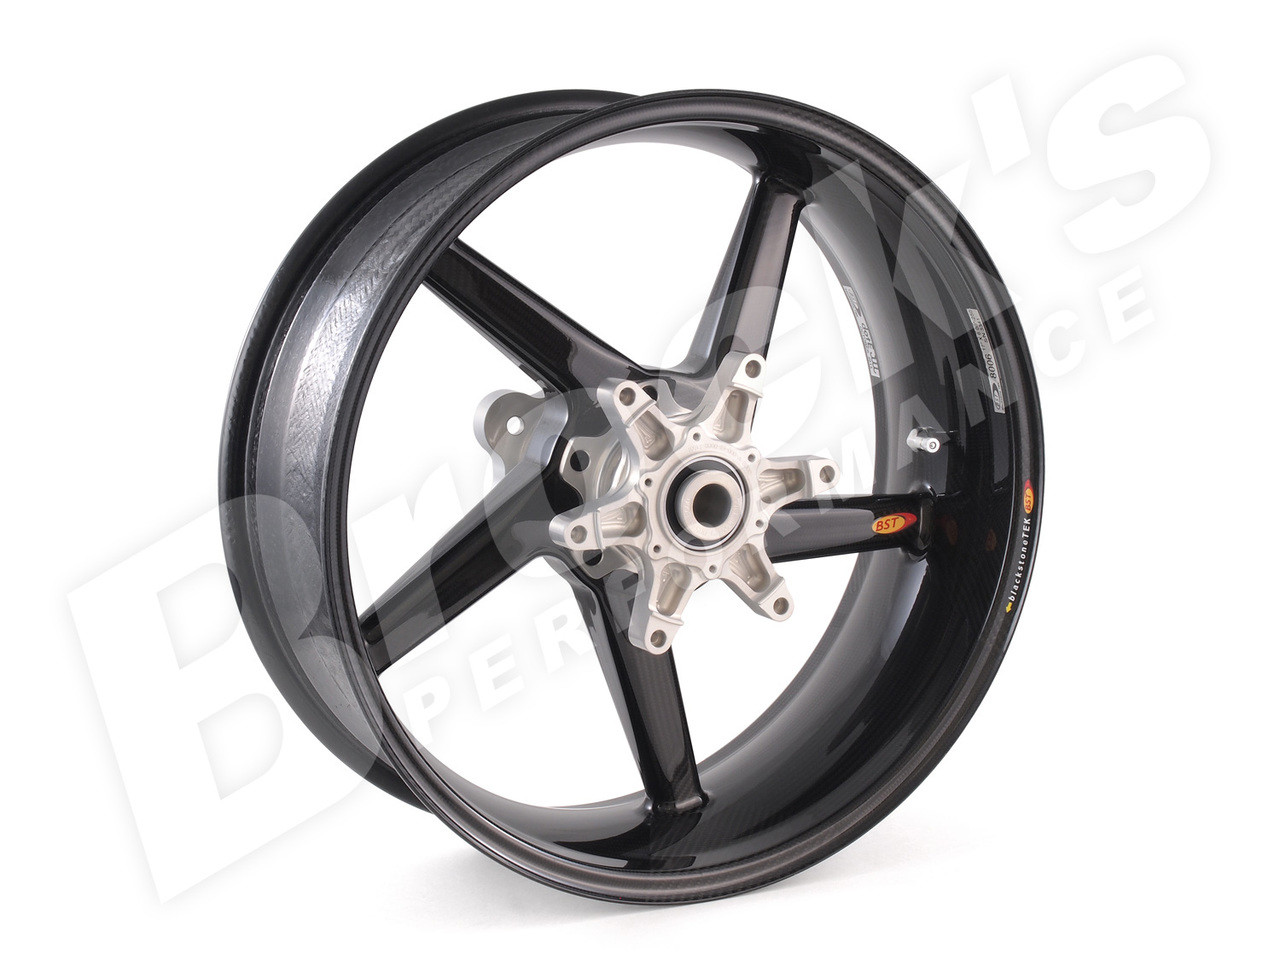 BST R+ Series Rear Wheel 6 625 x 17 for Suzuki Hayabusa (13-19) w/ ABS